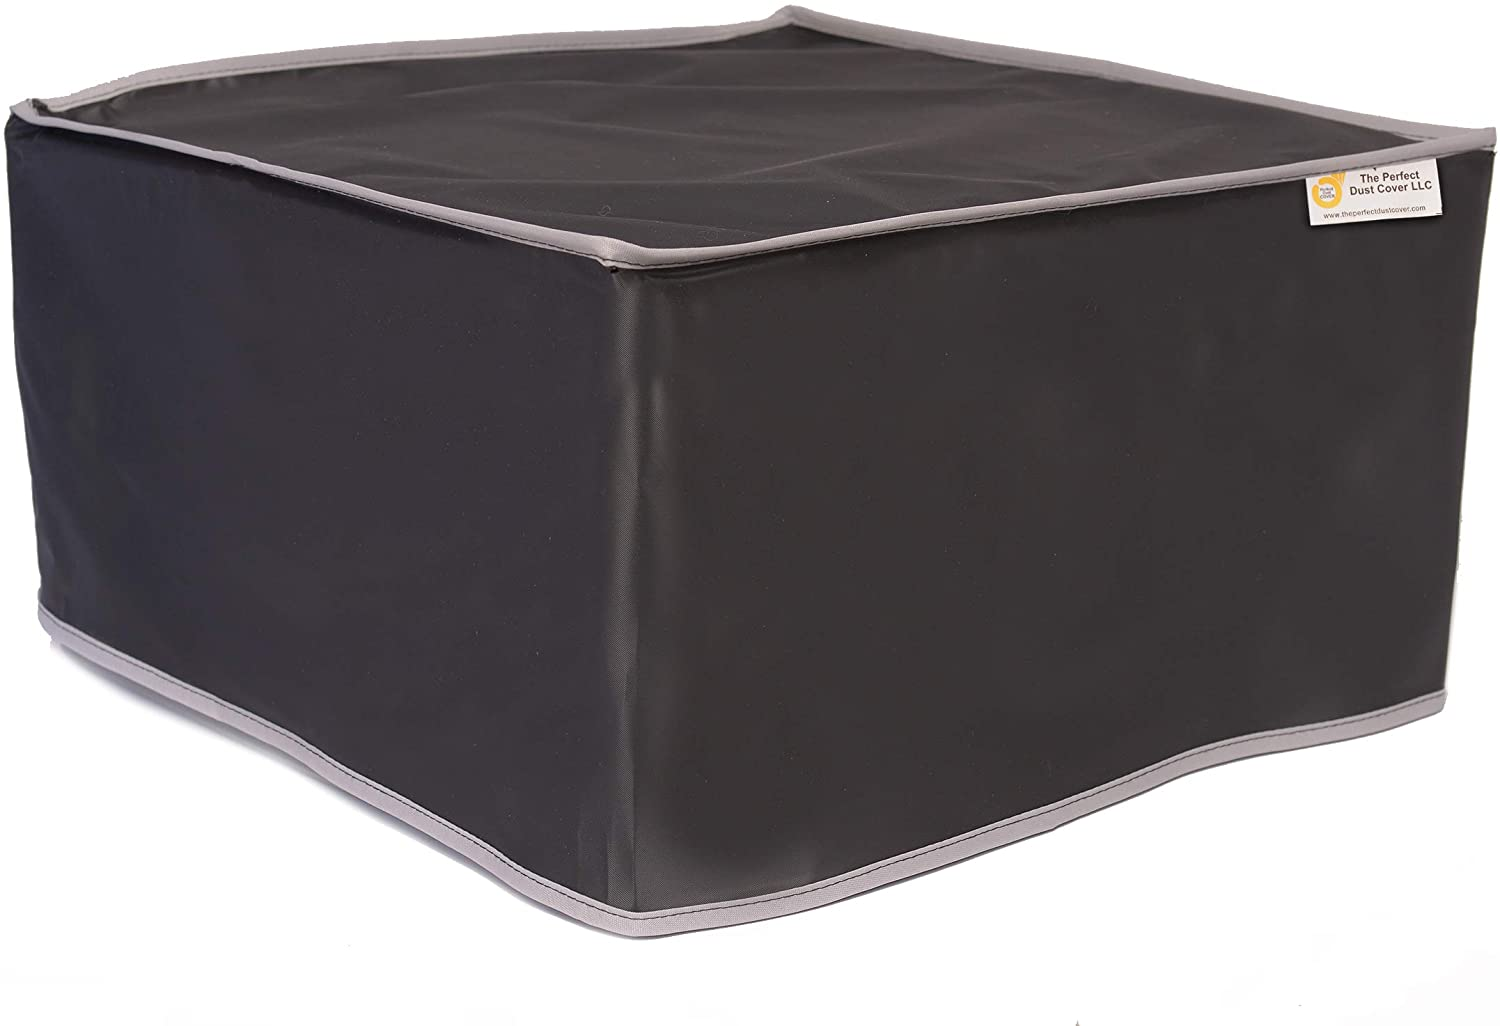 The Perfect Dust Cover Seattle Mall Black for Workforce WF Max 40% OFF Epson Vinyl